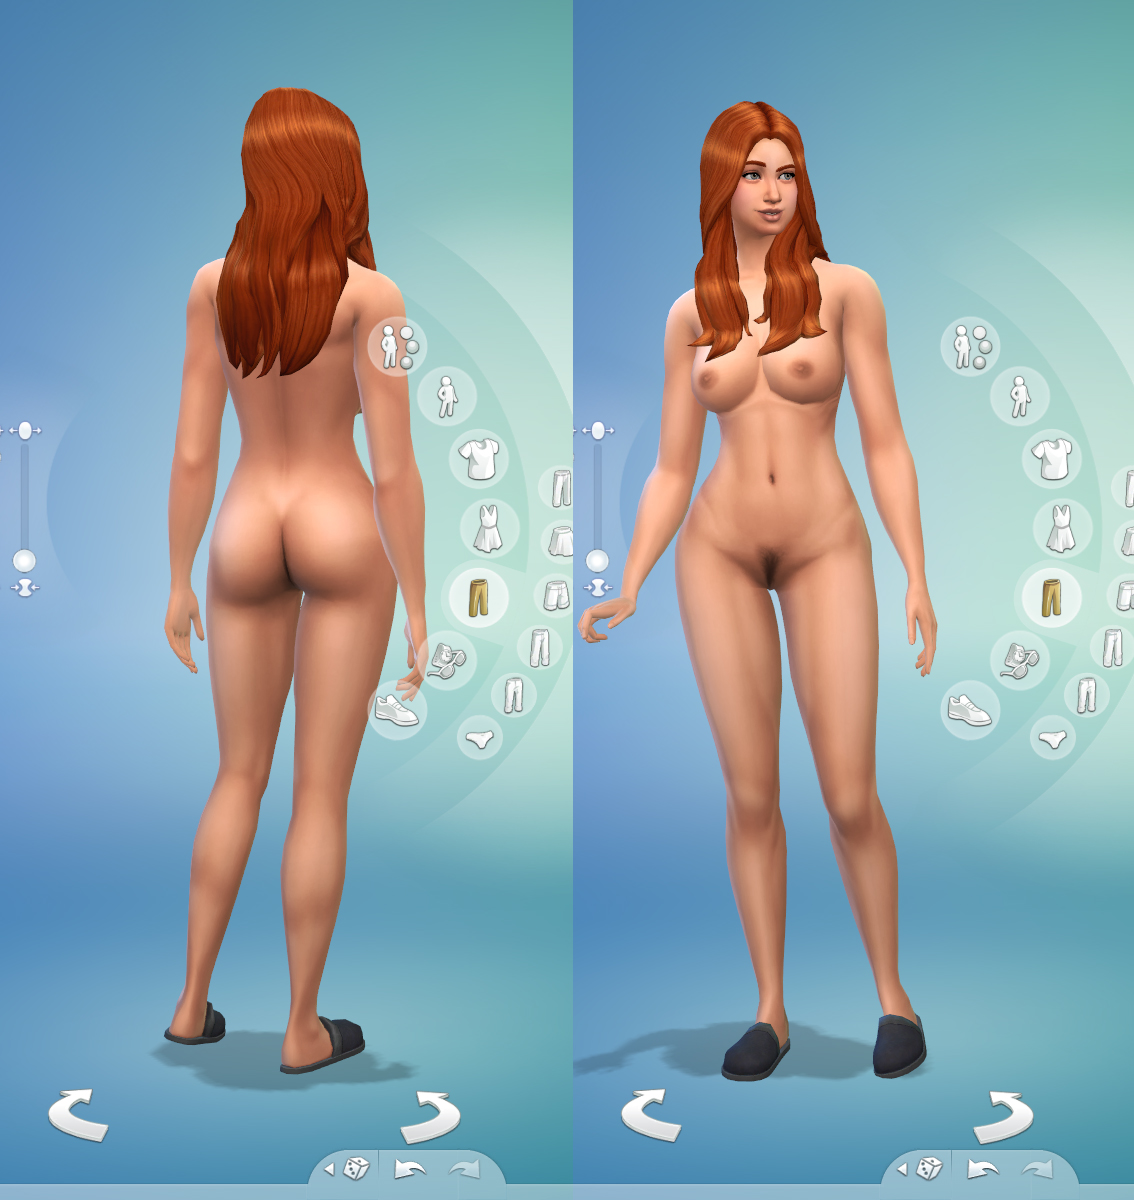 Pity, the sims nude skin shaven female above understanding!